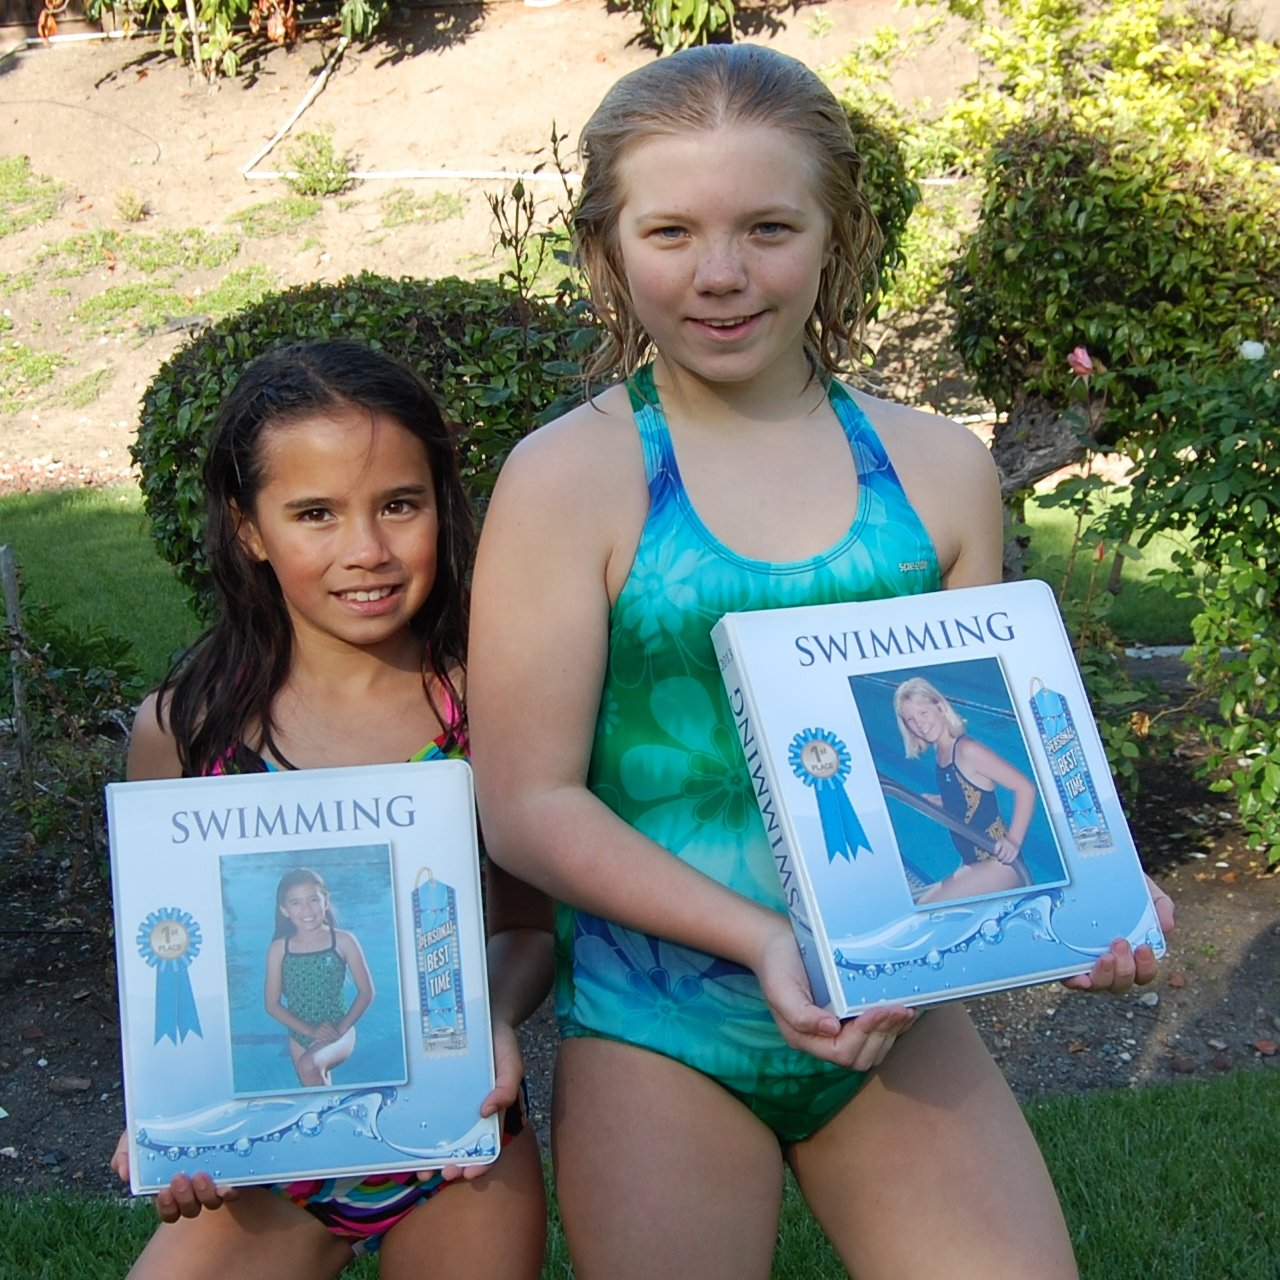 Swimming Award Ribbon BINDER Album Organizer with 15 pages Album Holder Display Gift Track and Field Gymnastics by Mercurydean (Image #7)